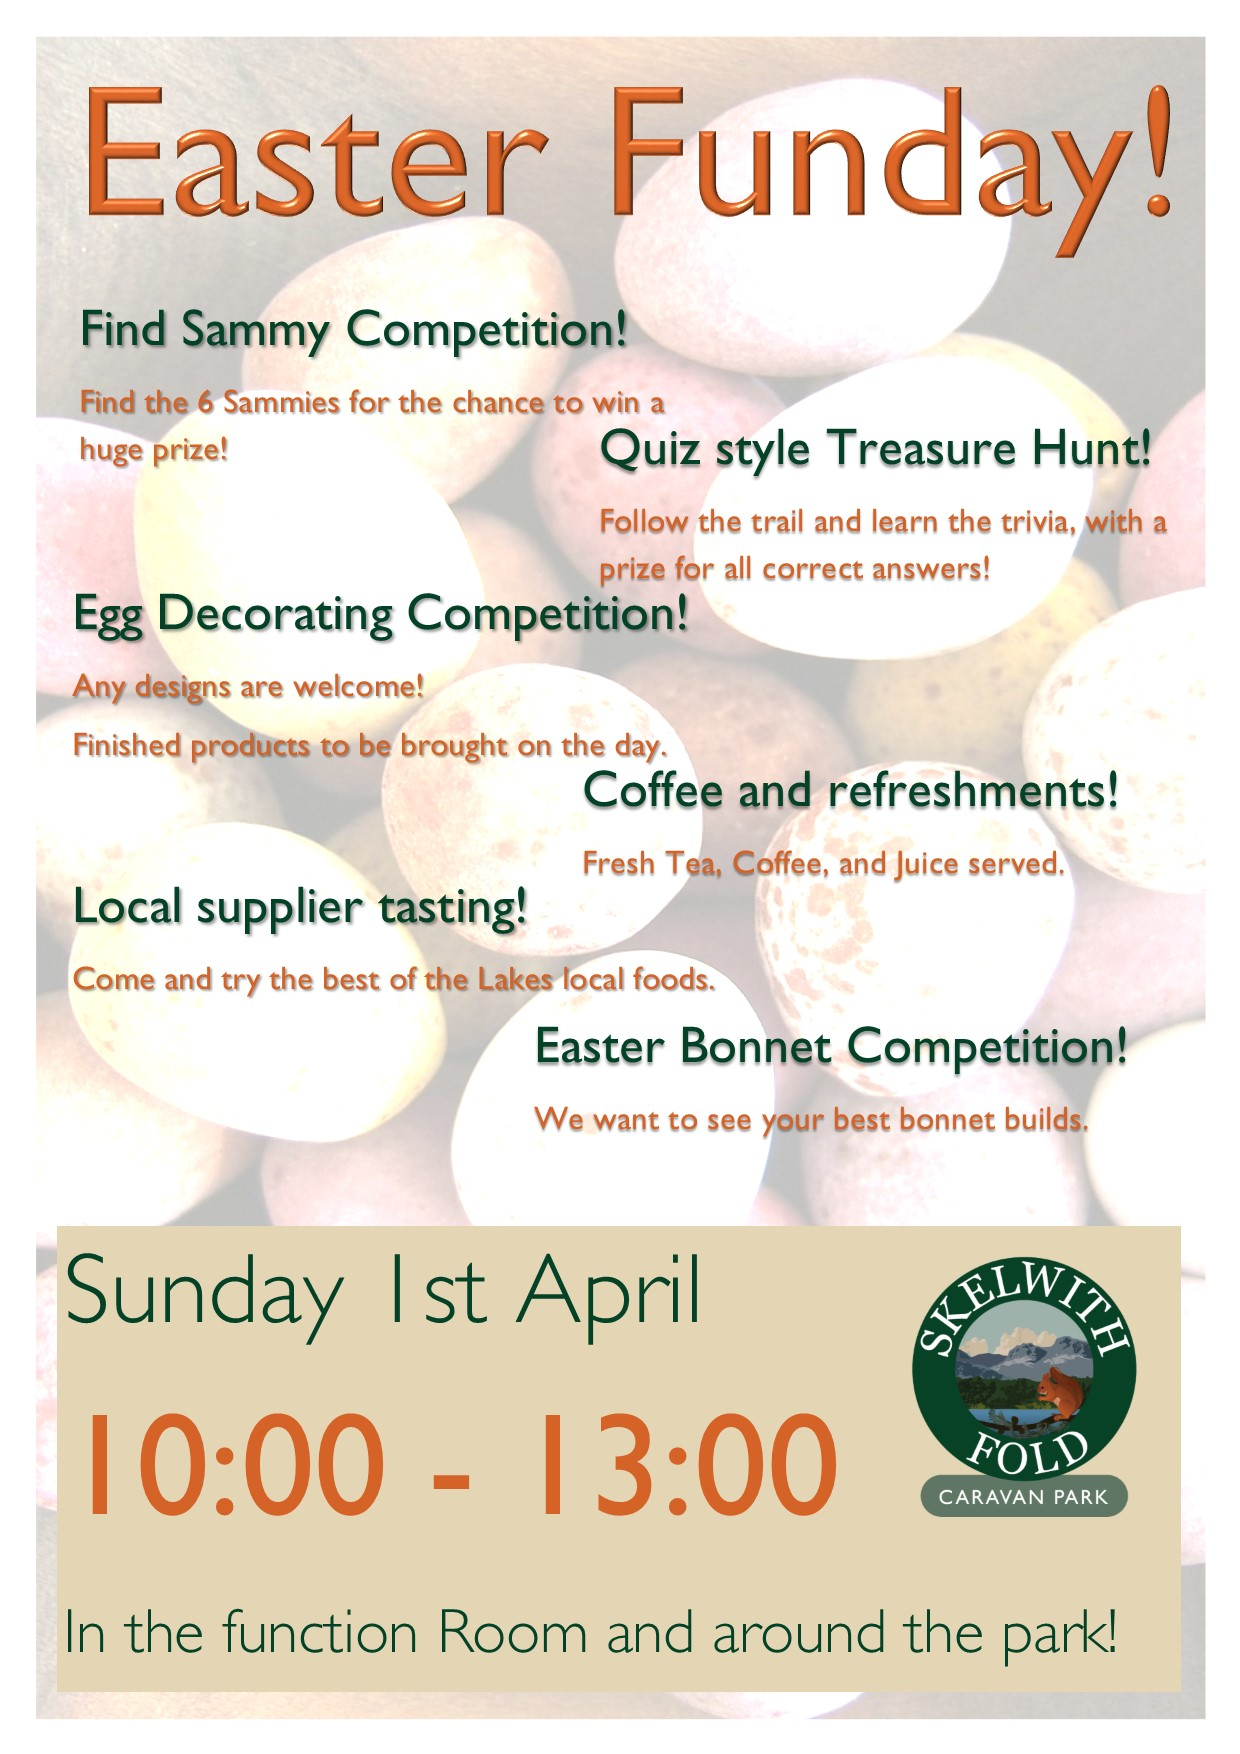 Easter Funday at Skelwith Fold Caravan Park